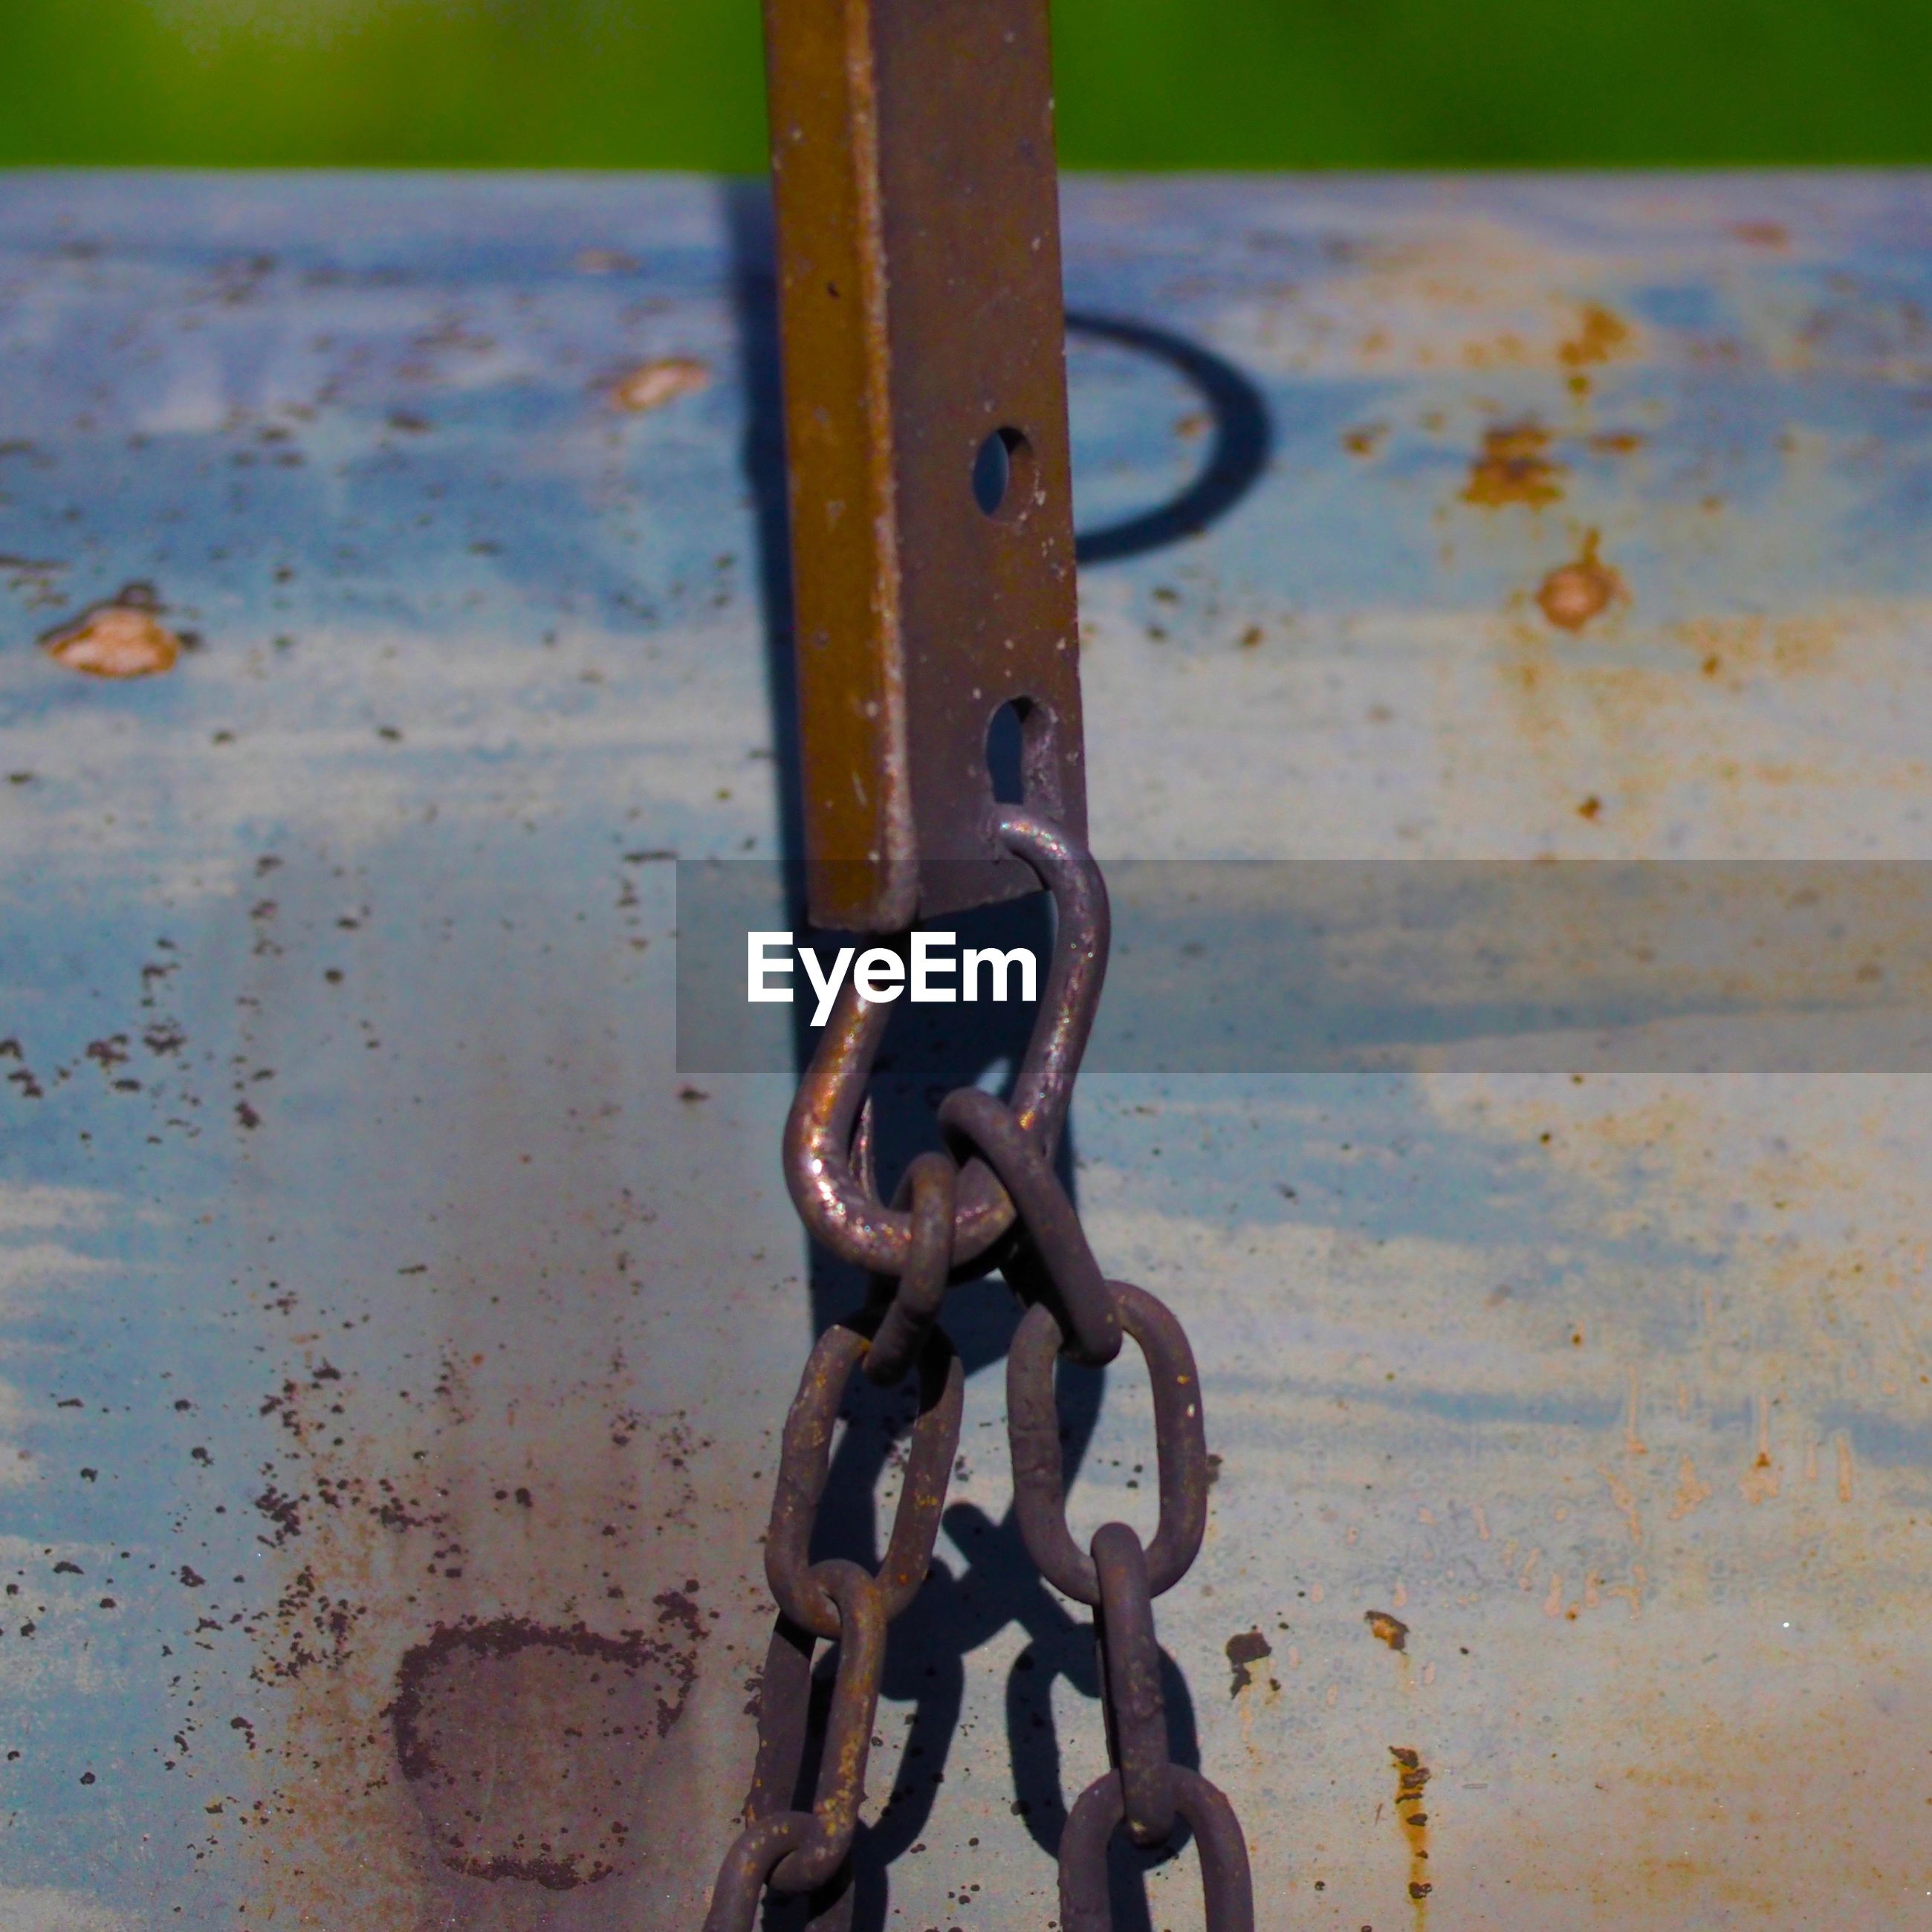 CLOSE-UP OF RUSTY METAL ON CHAIN